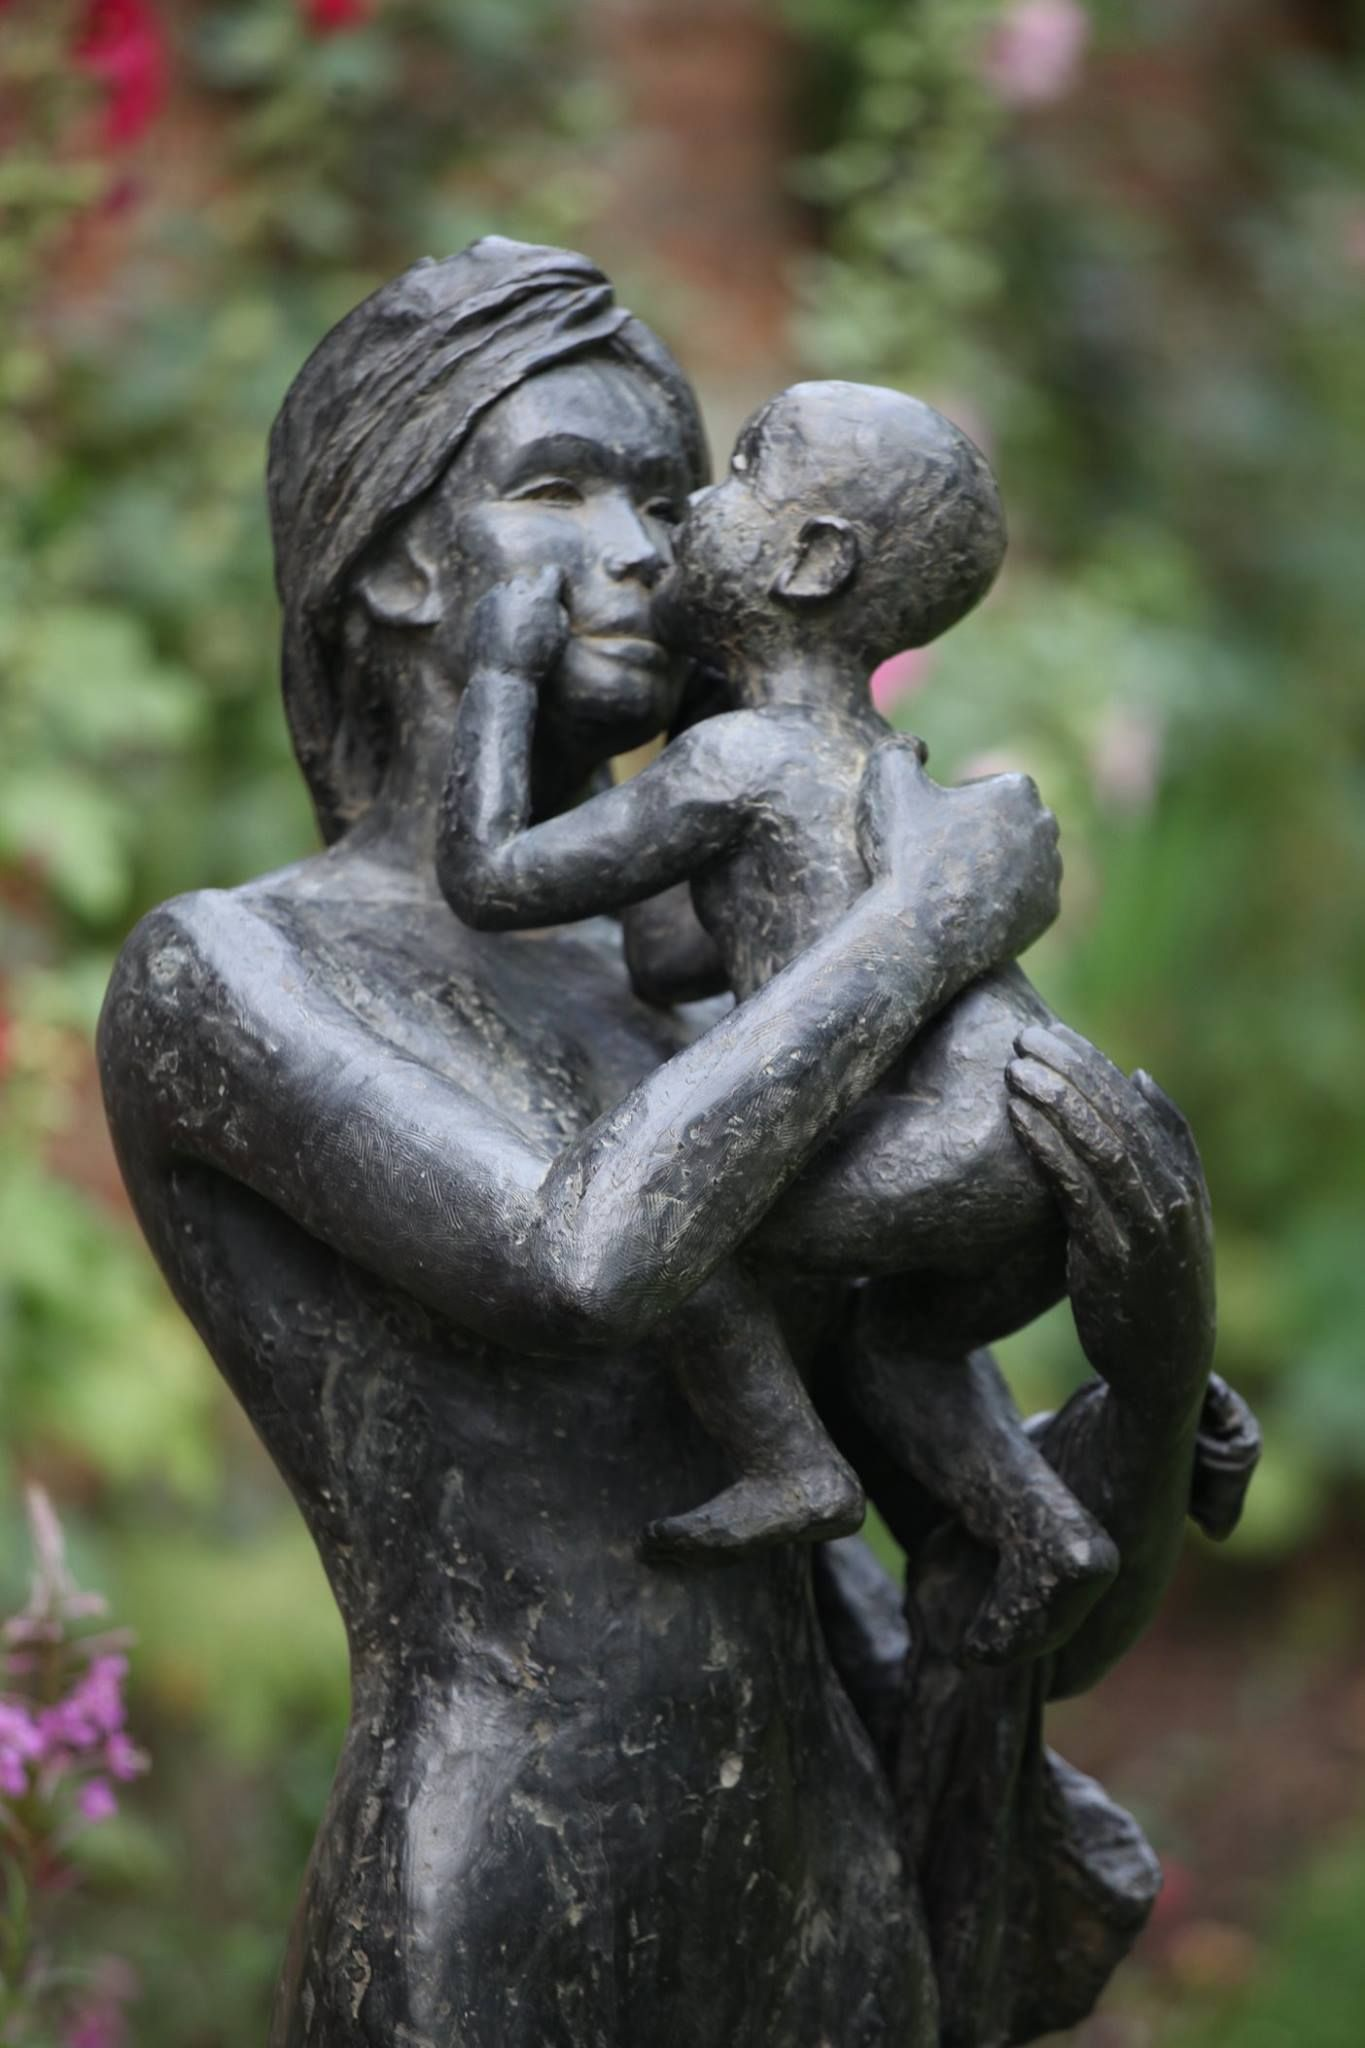 Big Woman with Child,Marine de Soos,Sculpture, detail 1